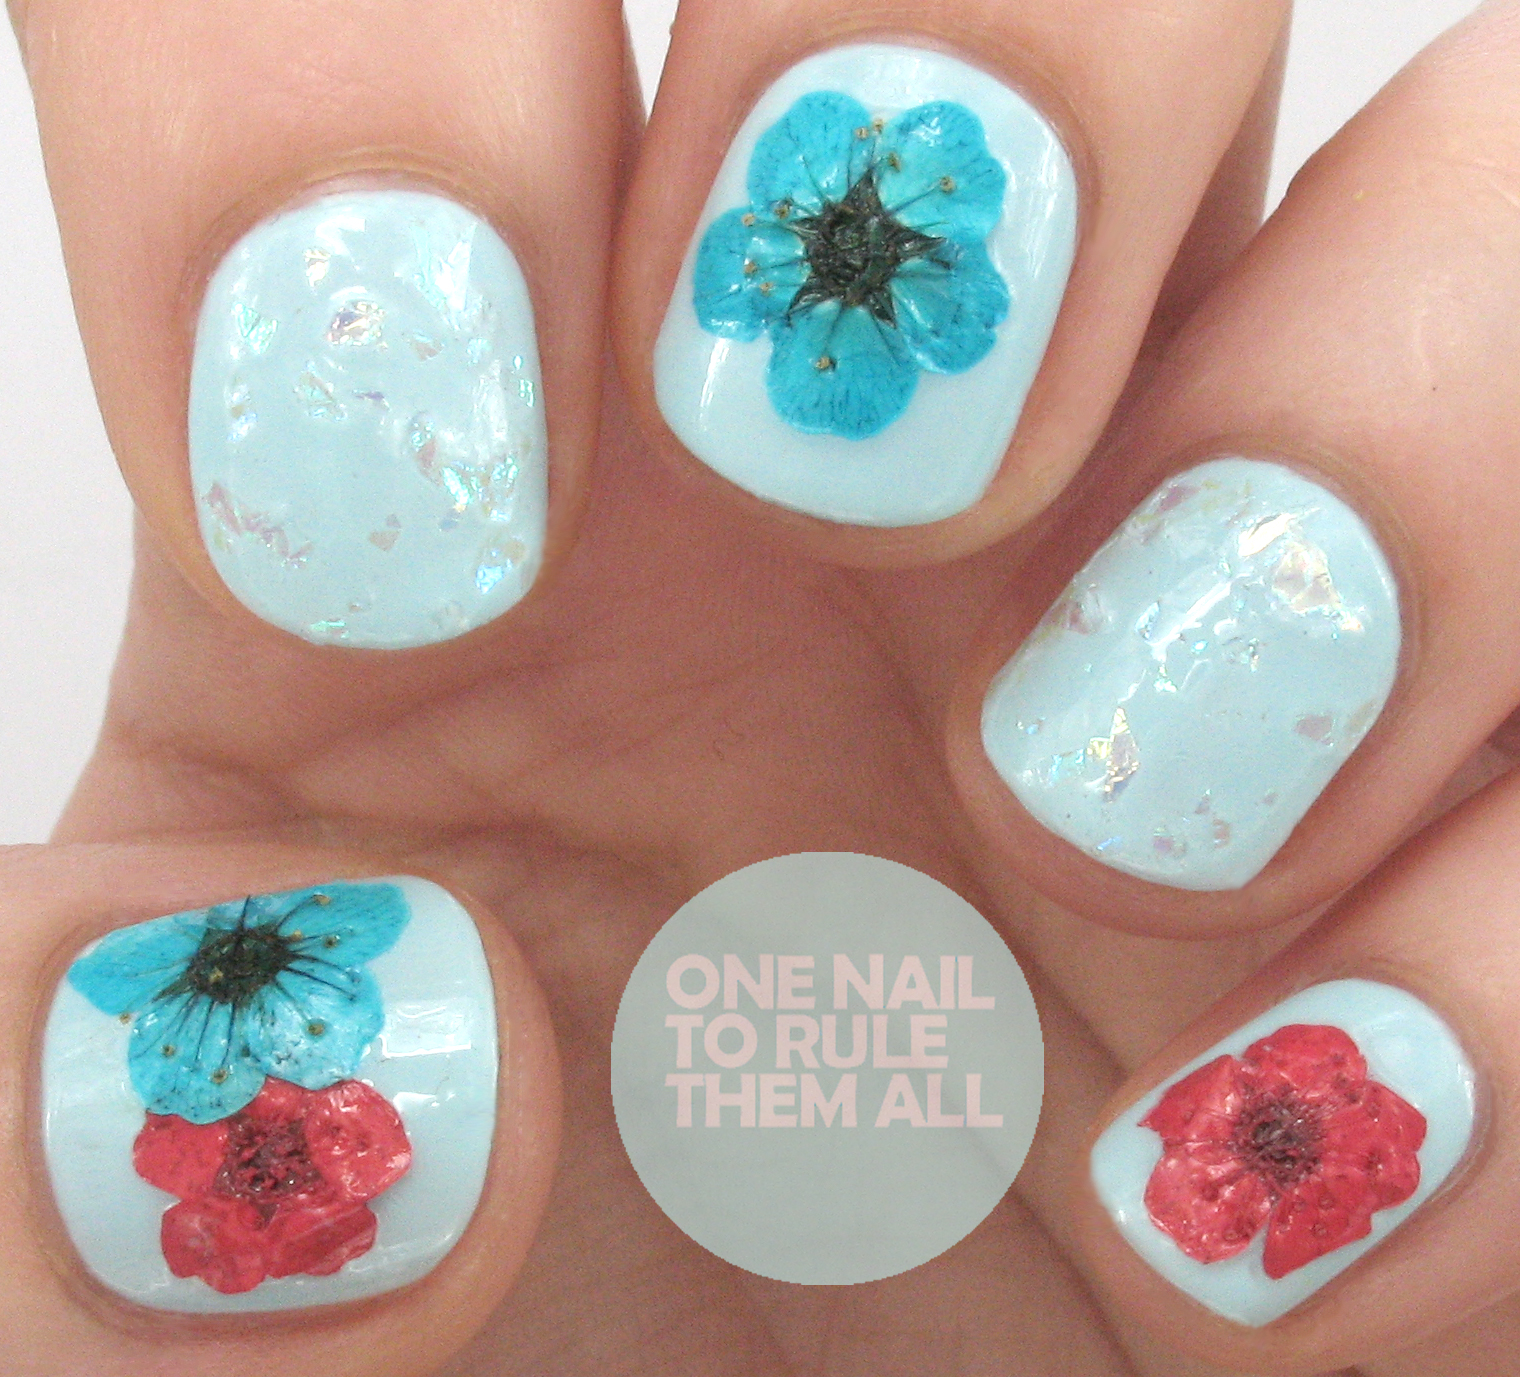 Vente Privee Art One Nail To Rule Them All Ciate X Vente Privee Sale Nail Art